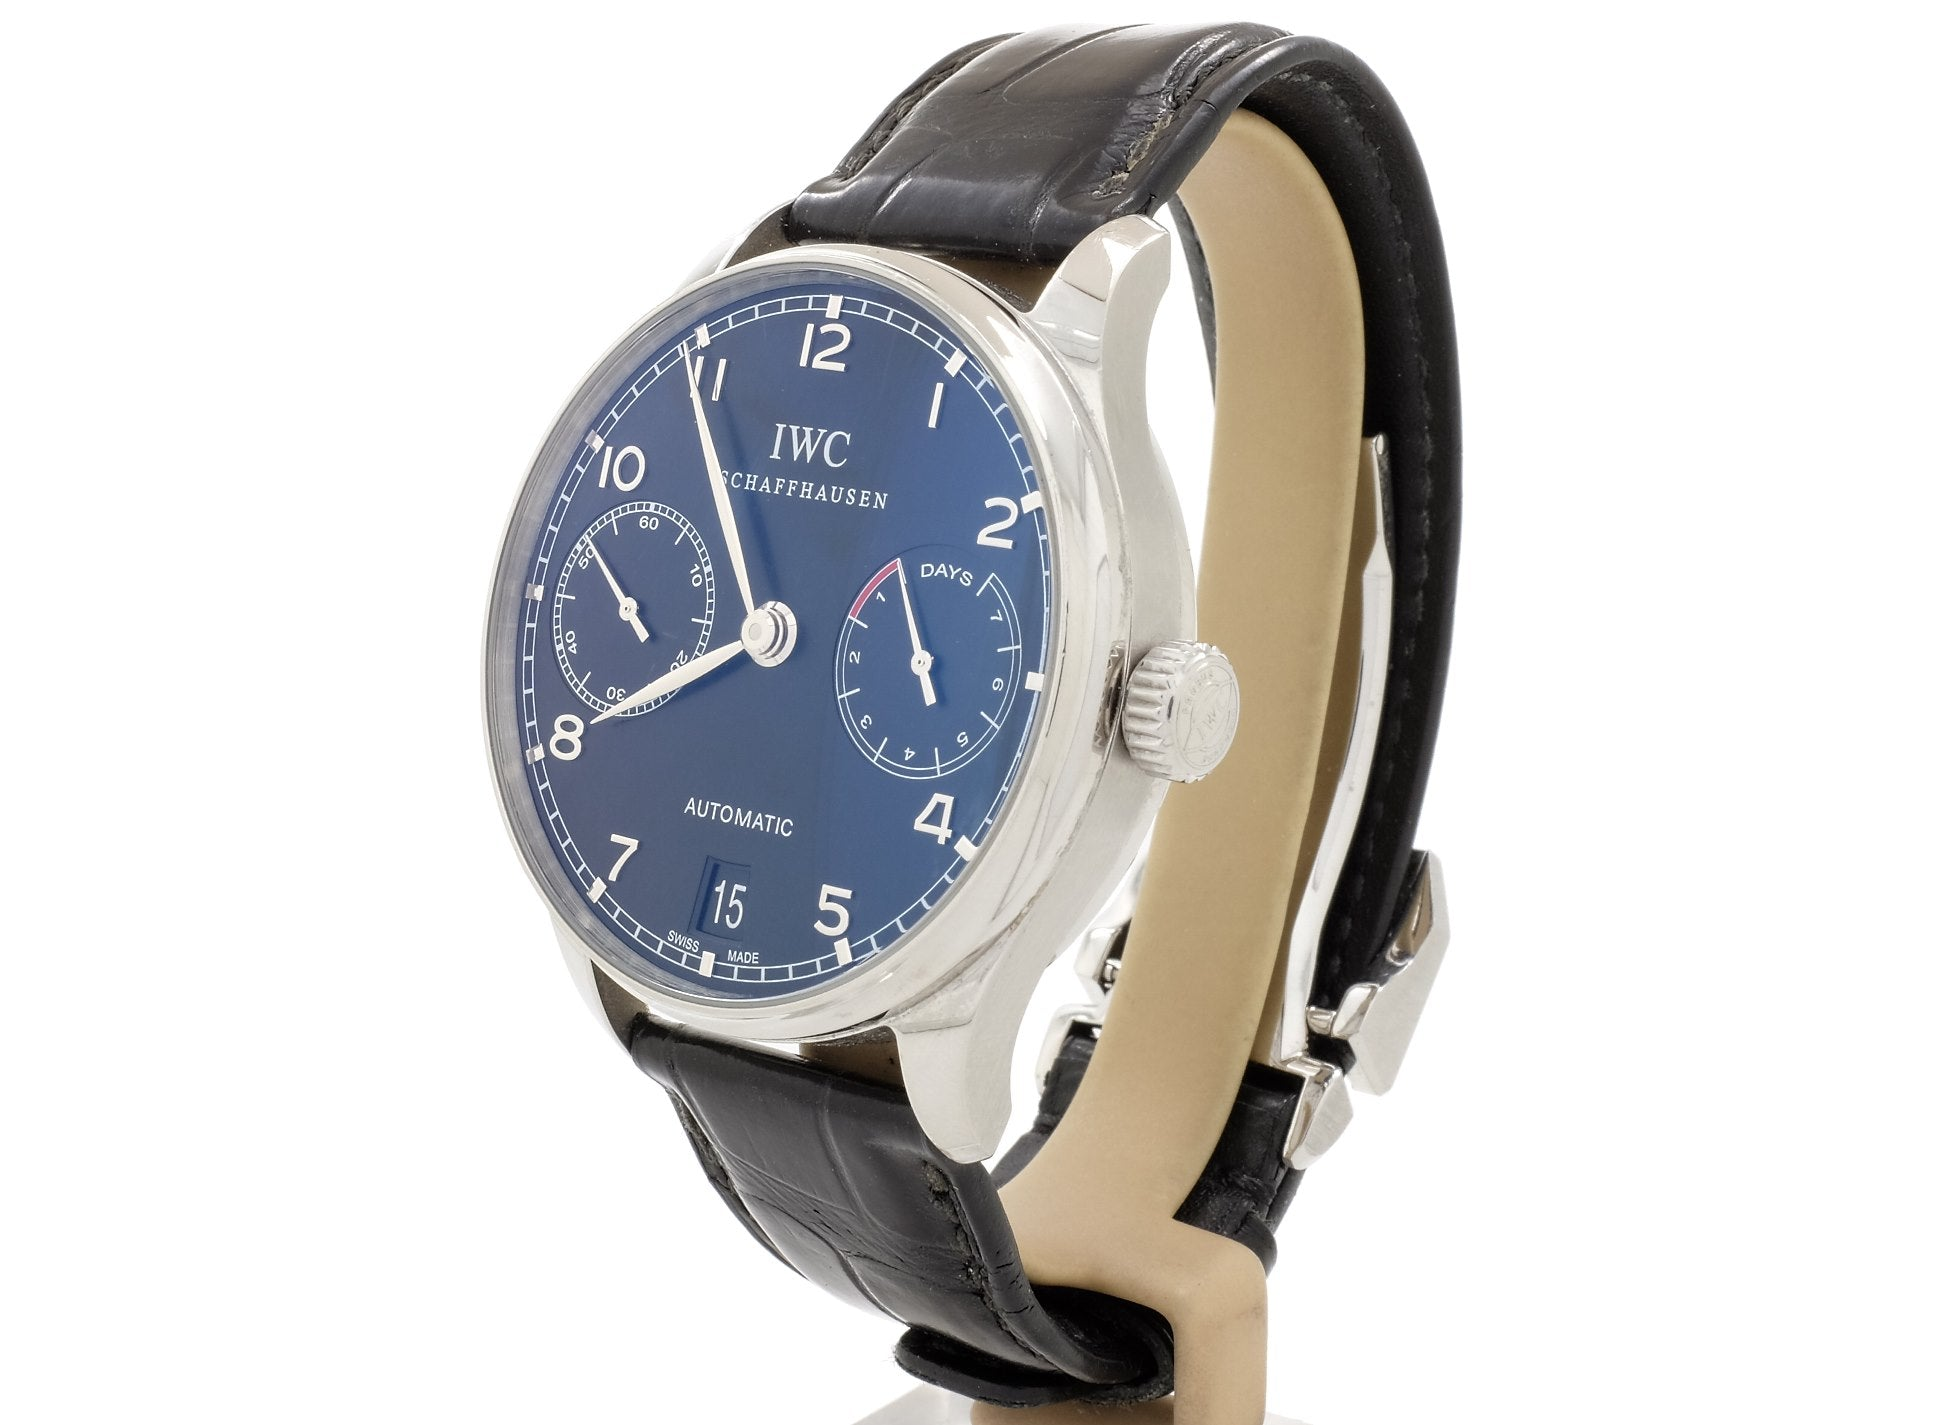 IWC Portugieser Automatic Ref. 5001 (IW500109) with Impressive Display Case Back